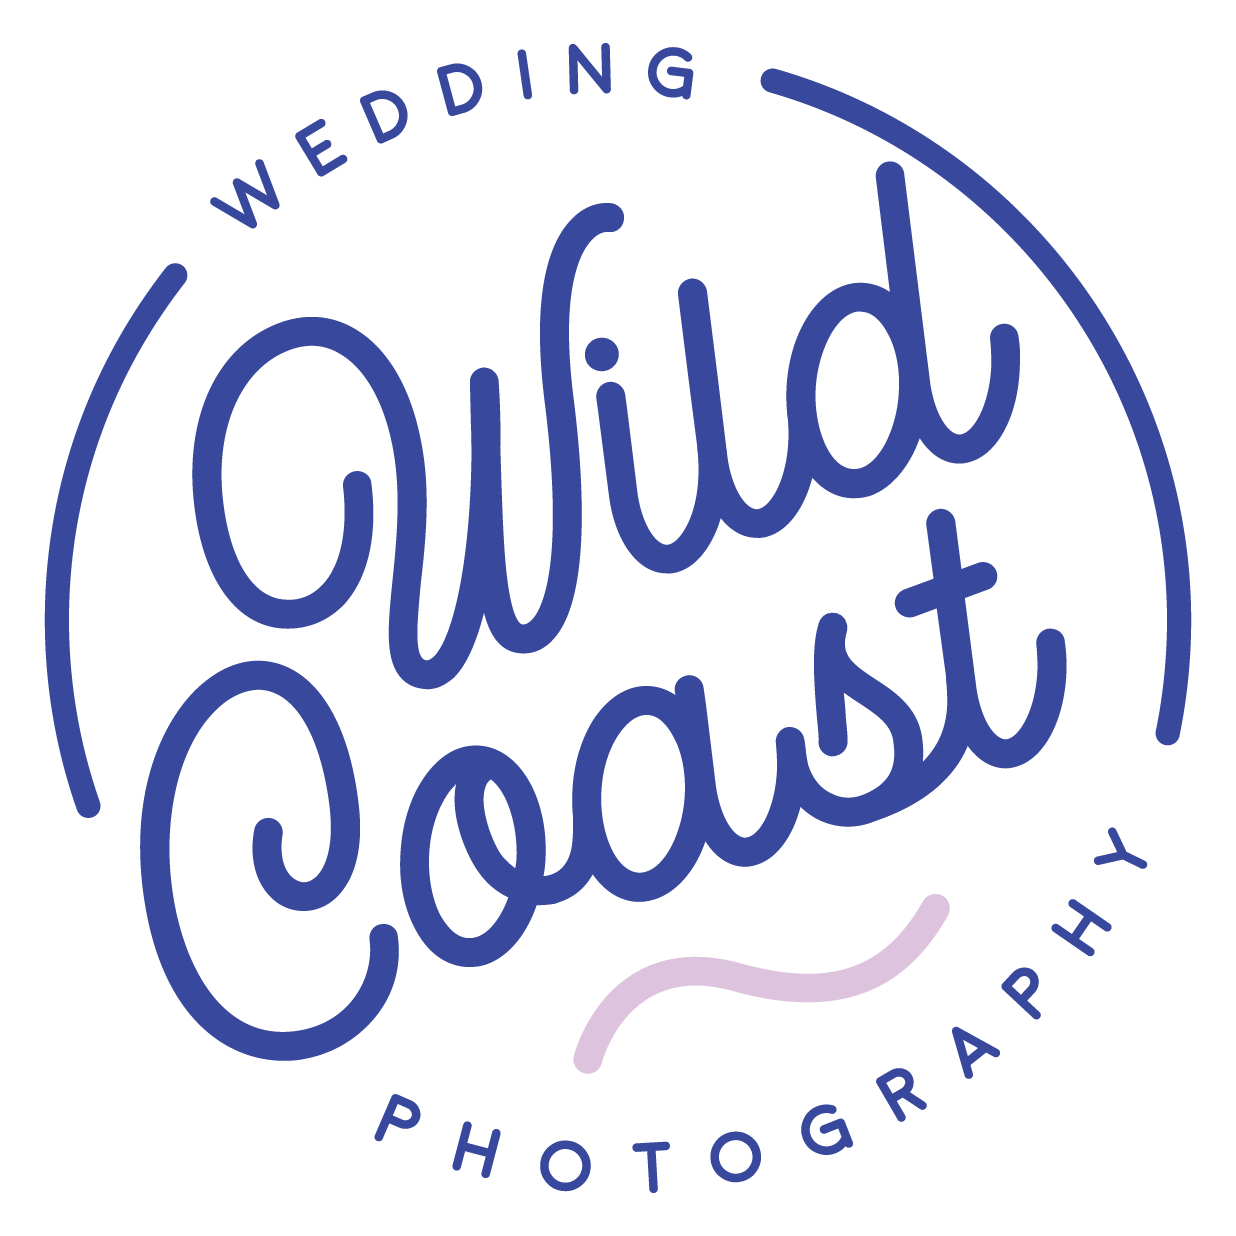 WILD COAST WEDDING PHOTOGRAPHY